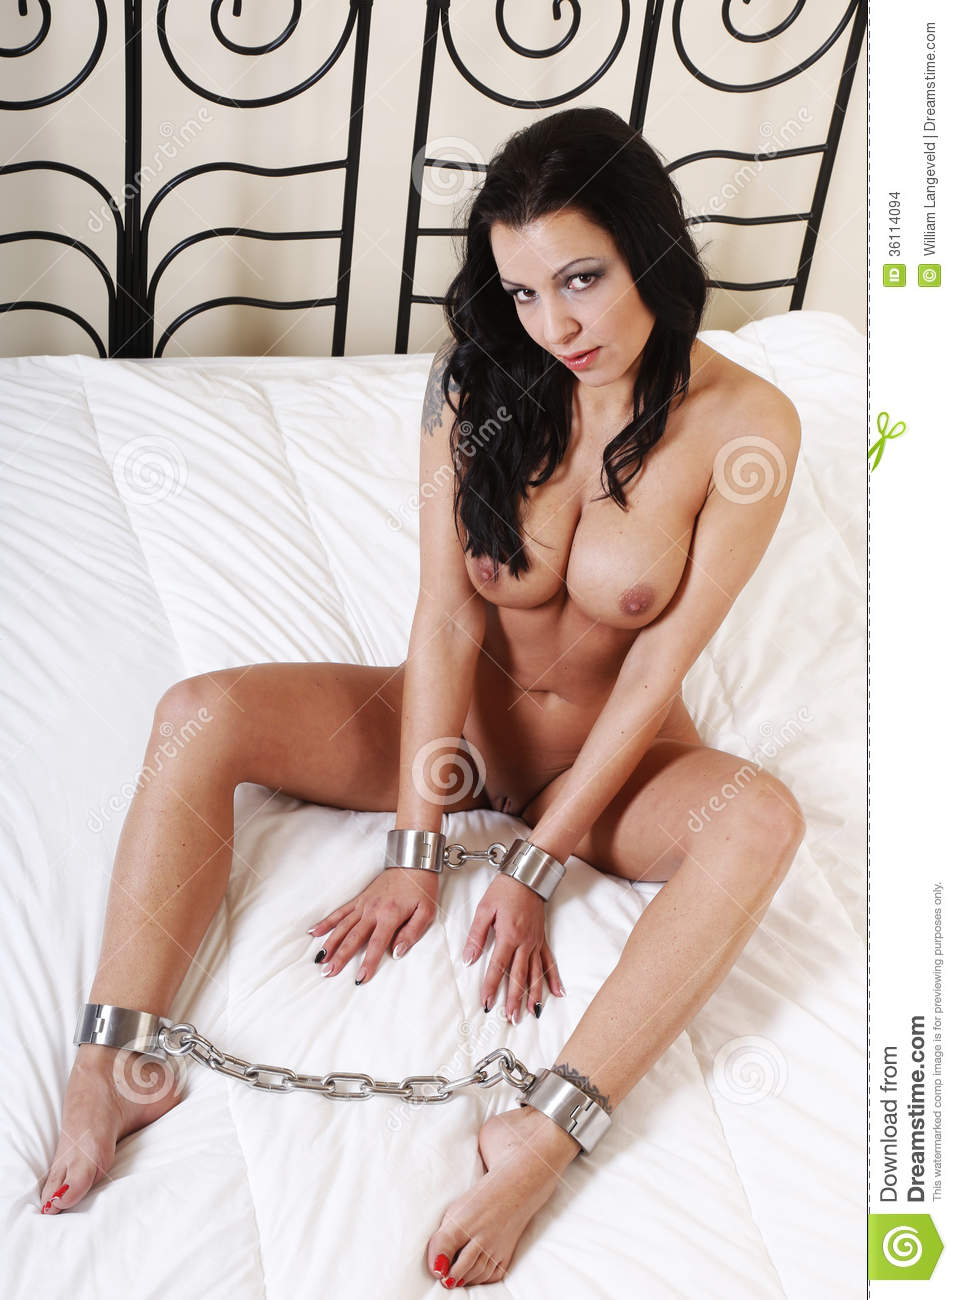 Beautful Nude Or Naked Woman Handcuffed Stock Photo -8032